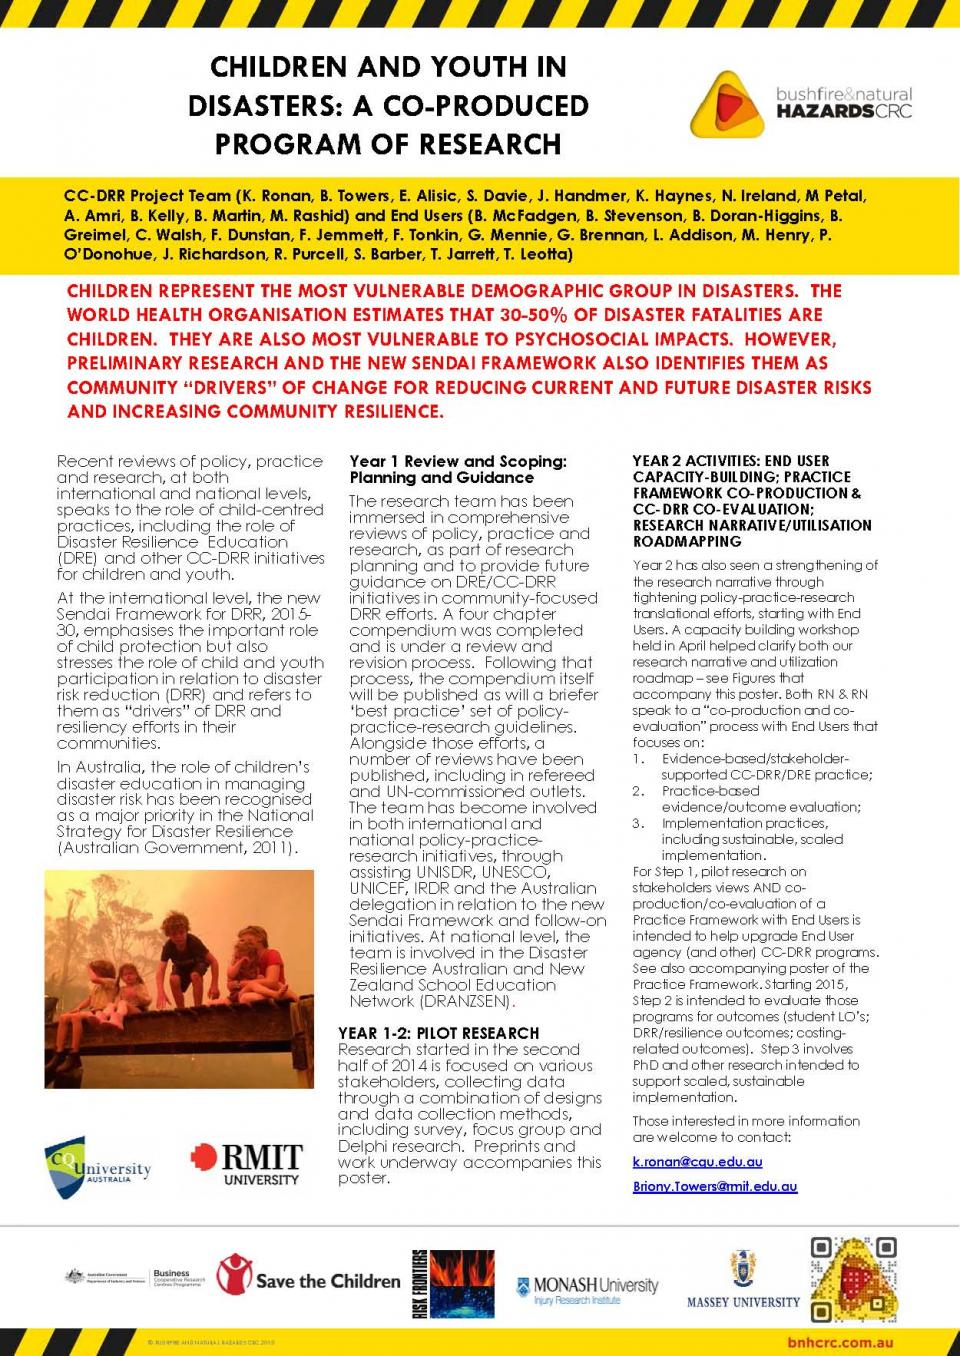 Children and Youth in Disasters: A Co-Produced Program of Research